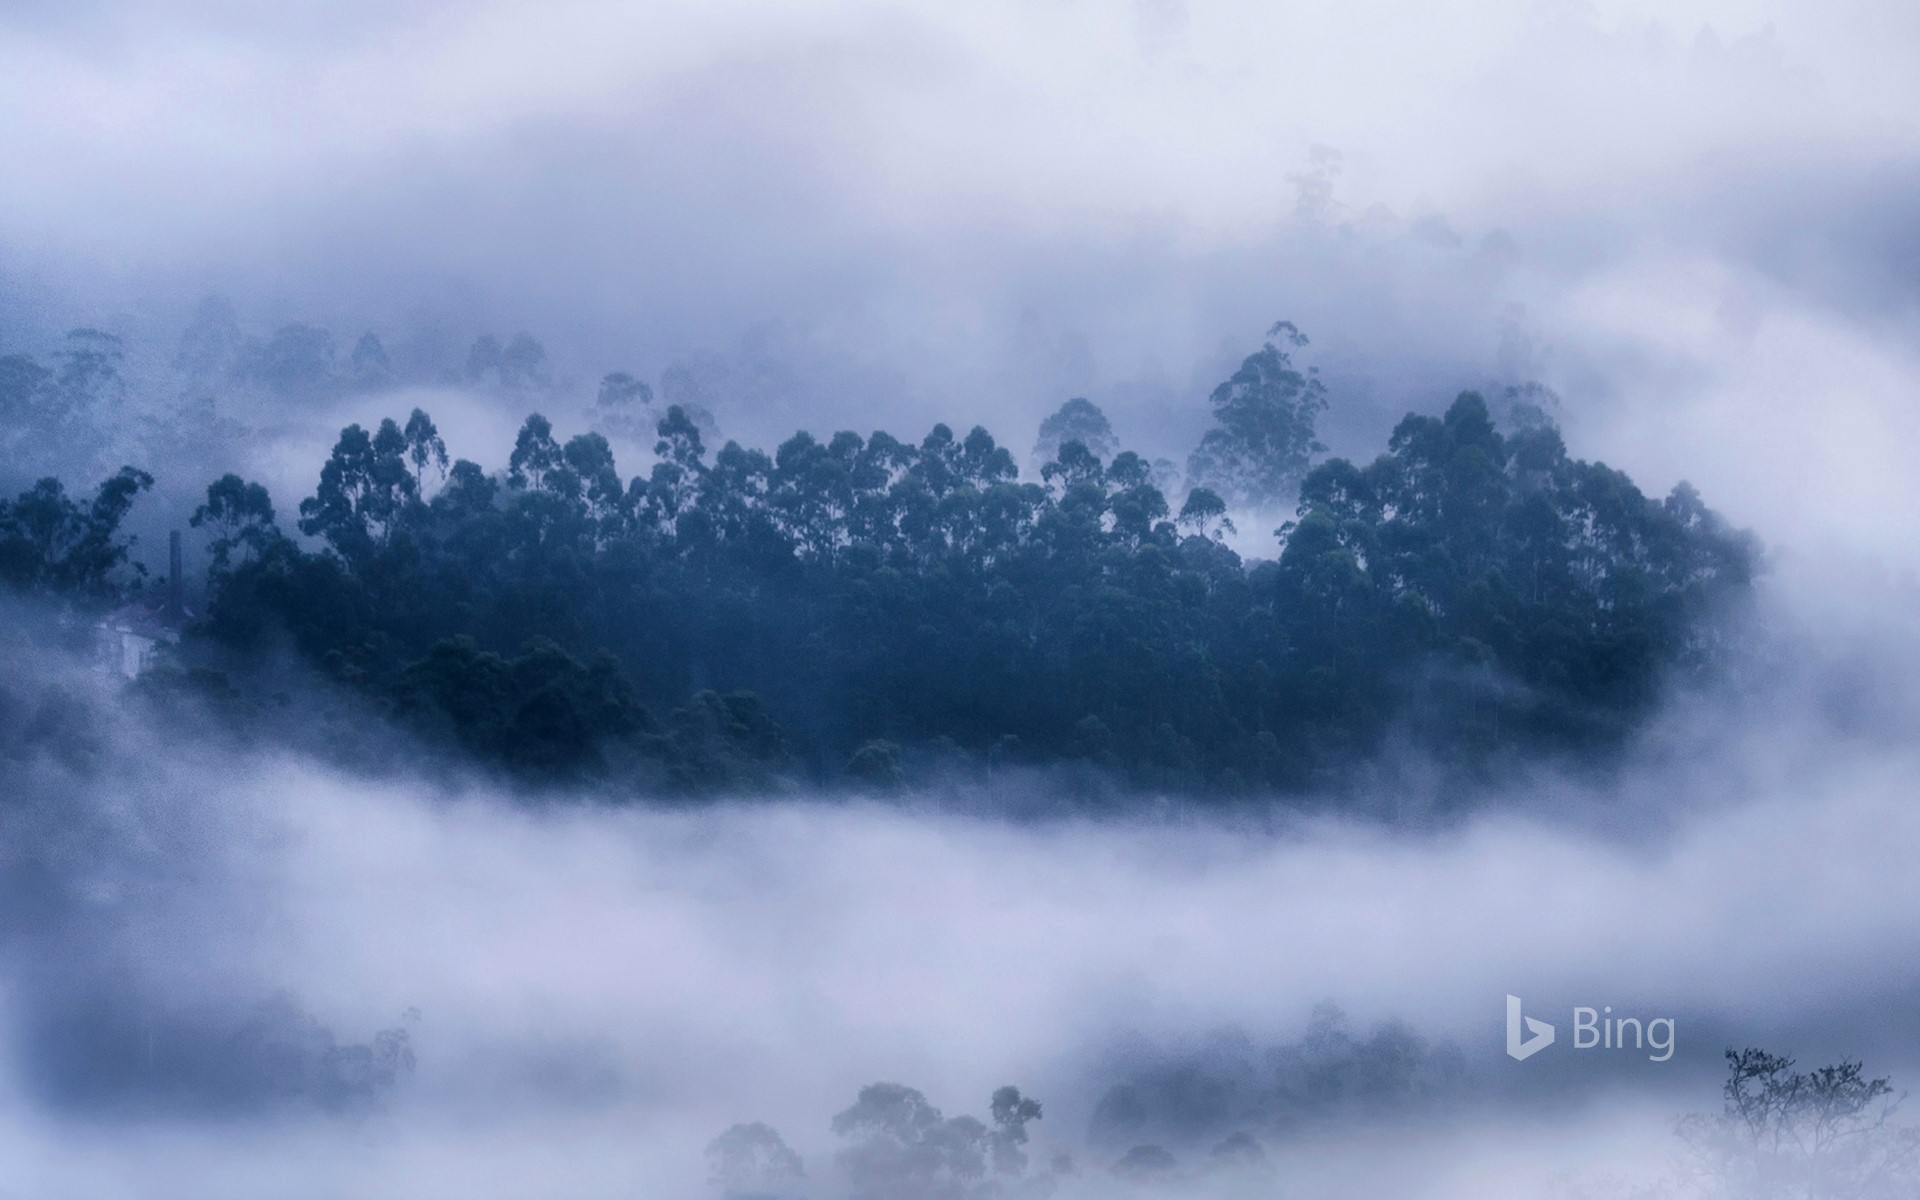 Mist surrounding a forest in Munnar, Kerala, India